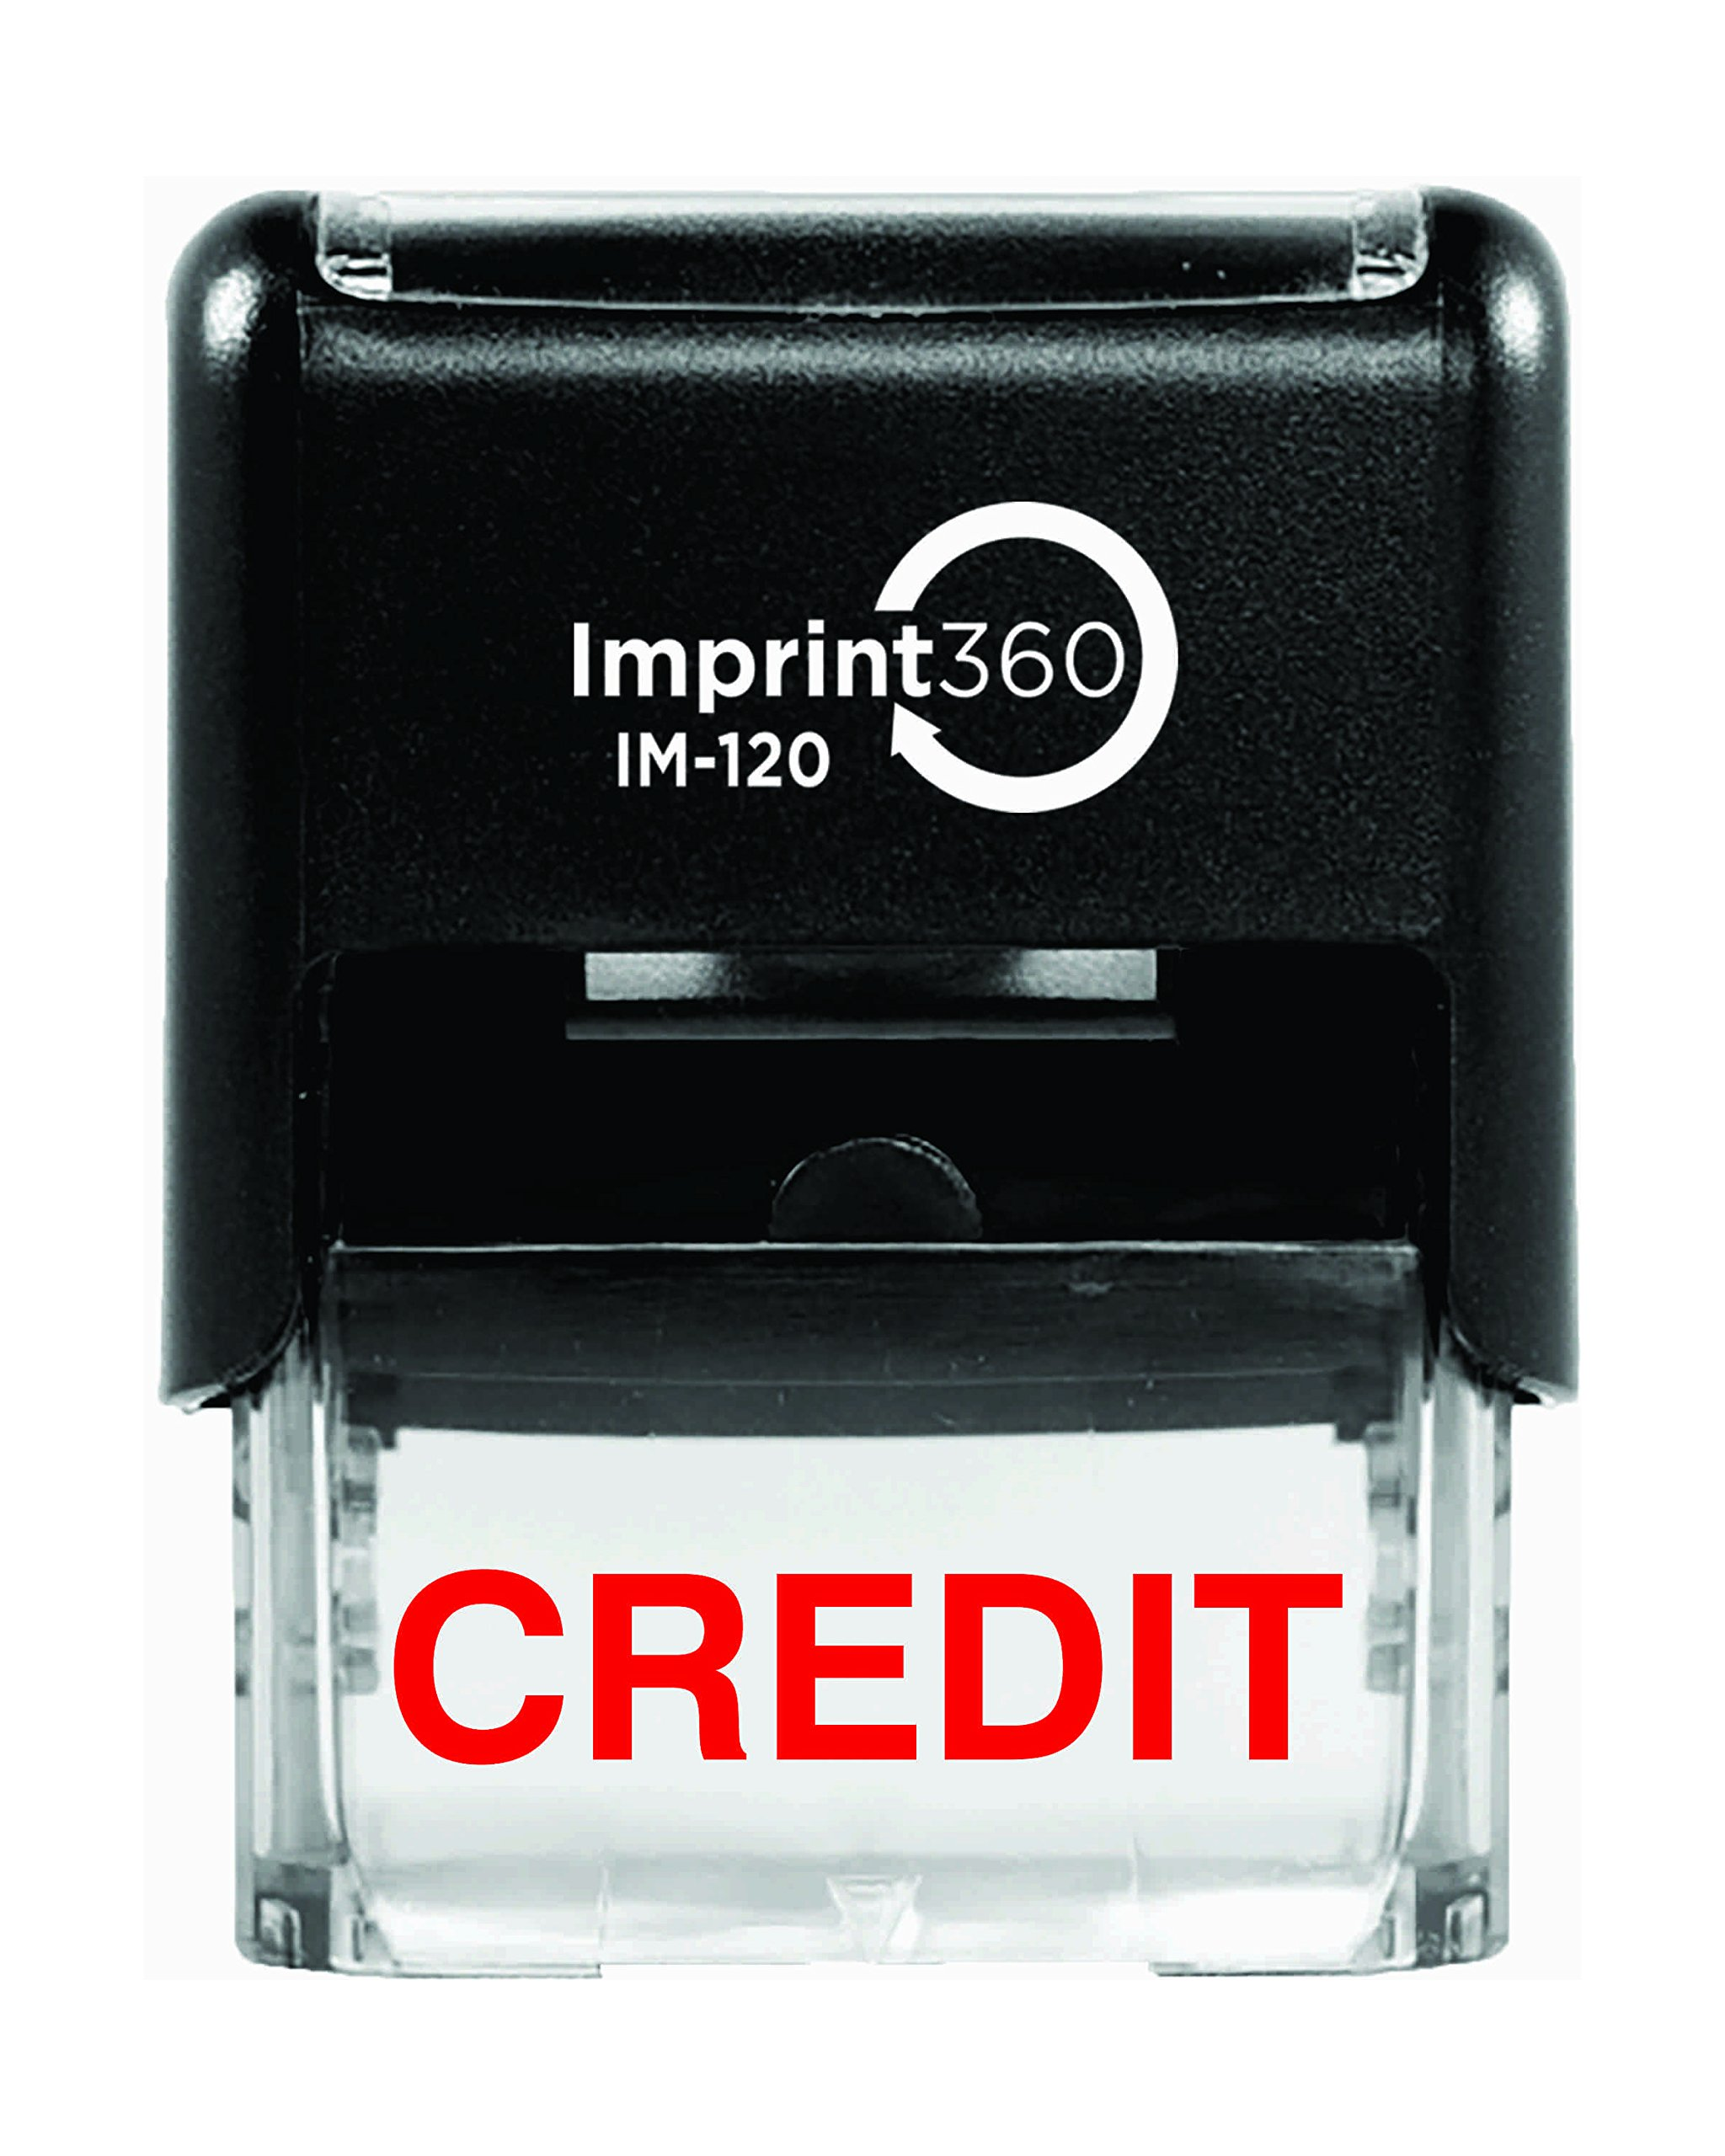 Imprint 360 AS-IMP1086''CREDIT'' Heavy Duty Commercial Quality Self Inking Rubber Stamp, Solid Text, Laser Engraved for Clean, Precise Imprints, 1/2'' Impression Size, 9/16'' x 1'', Red Ink